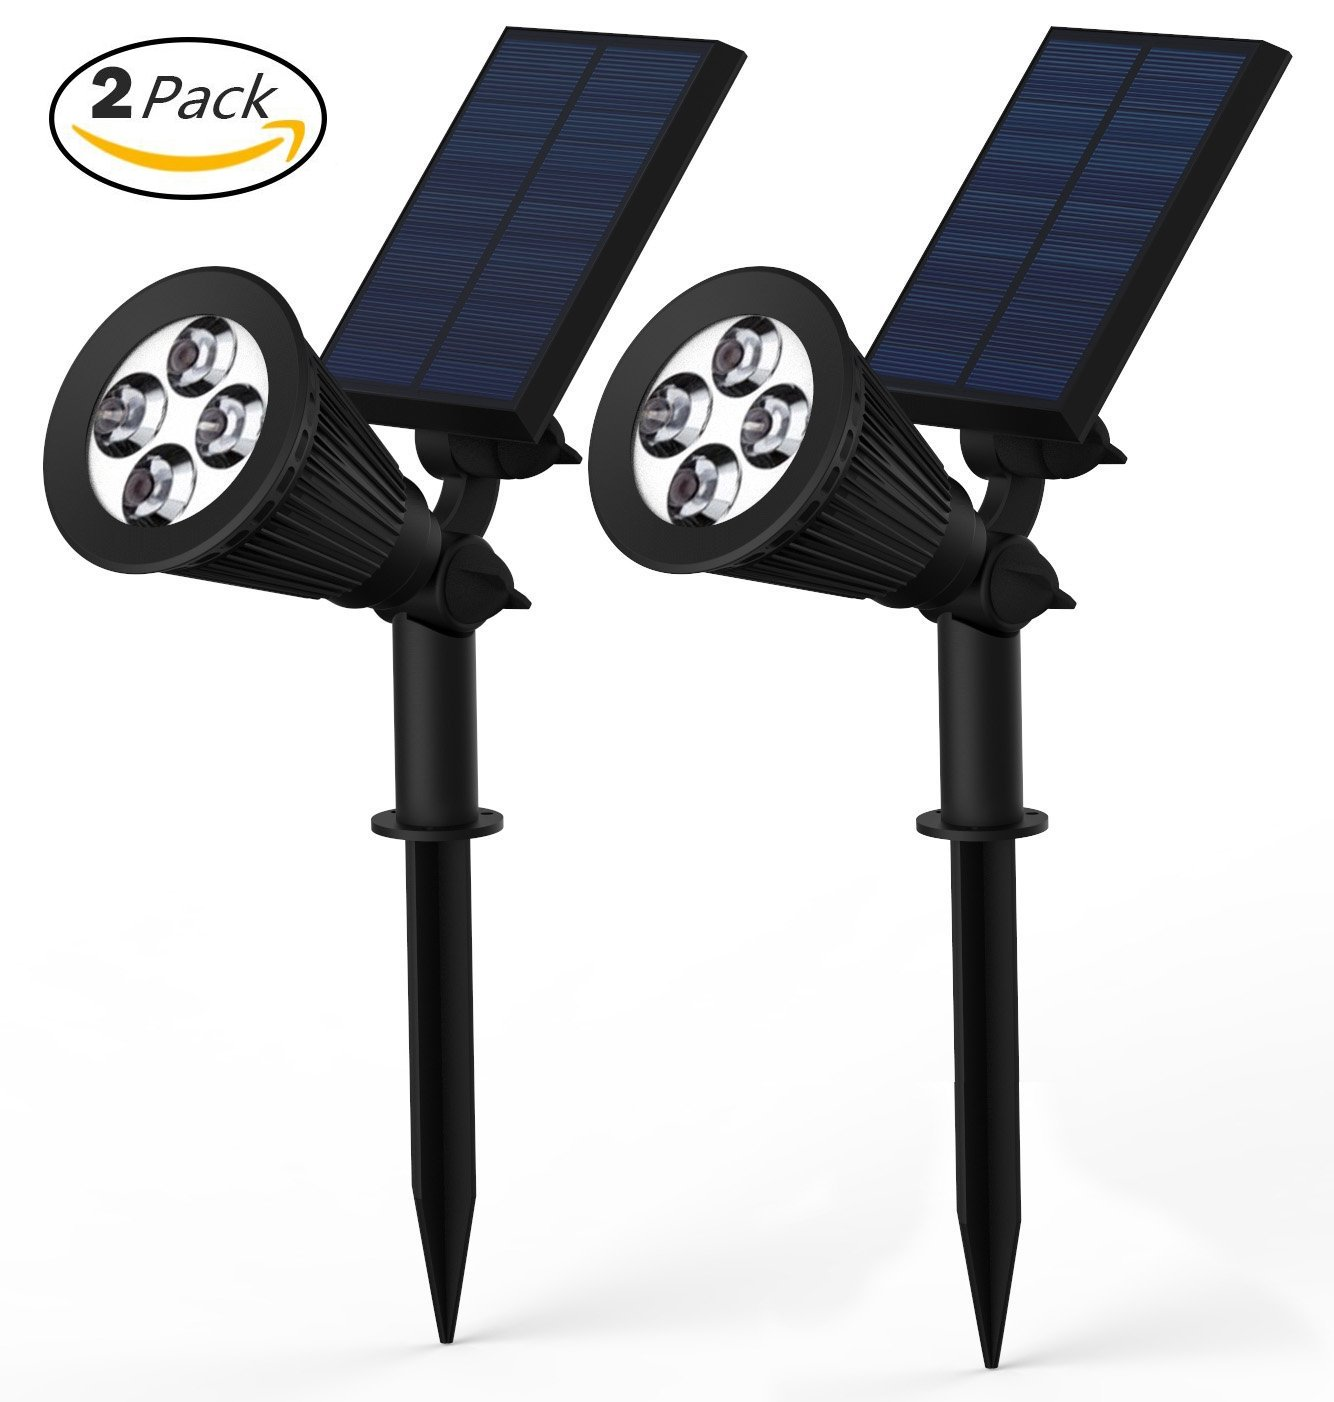 Solar Lights, Lemontec 2-in-1 Adjustable 4 LED Wall and Landscape Light; Spotlight Bright-and-Dark Sensing Auto On/Off Security Lighting; Ideal for Patio, Yard, Garden, Driveway, and Pool 2 Pack